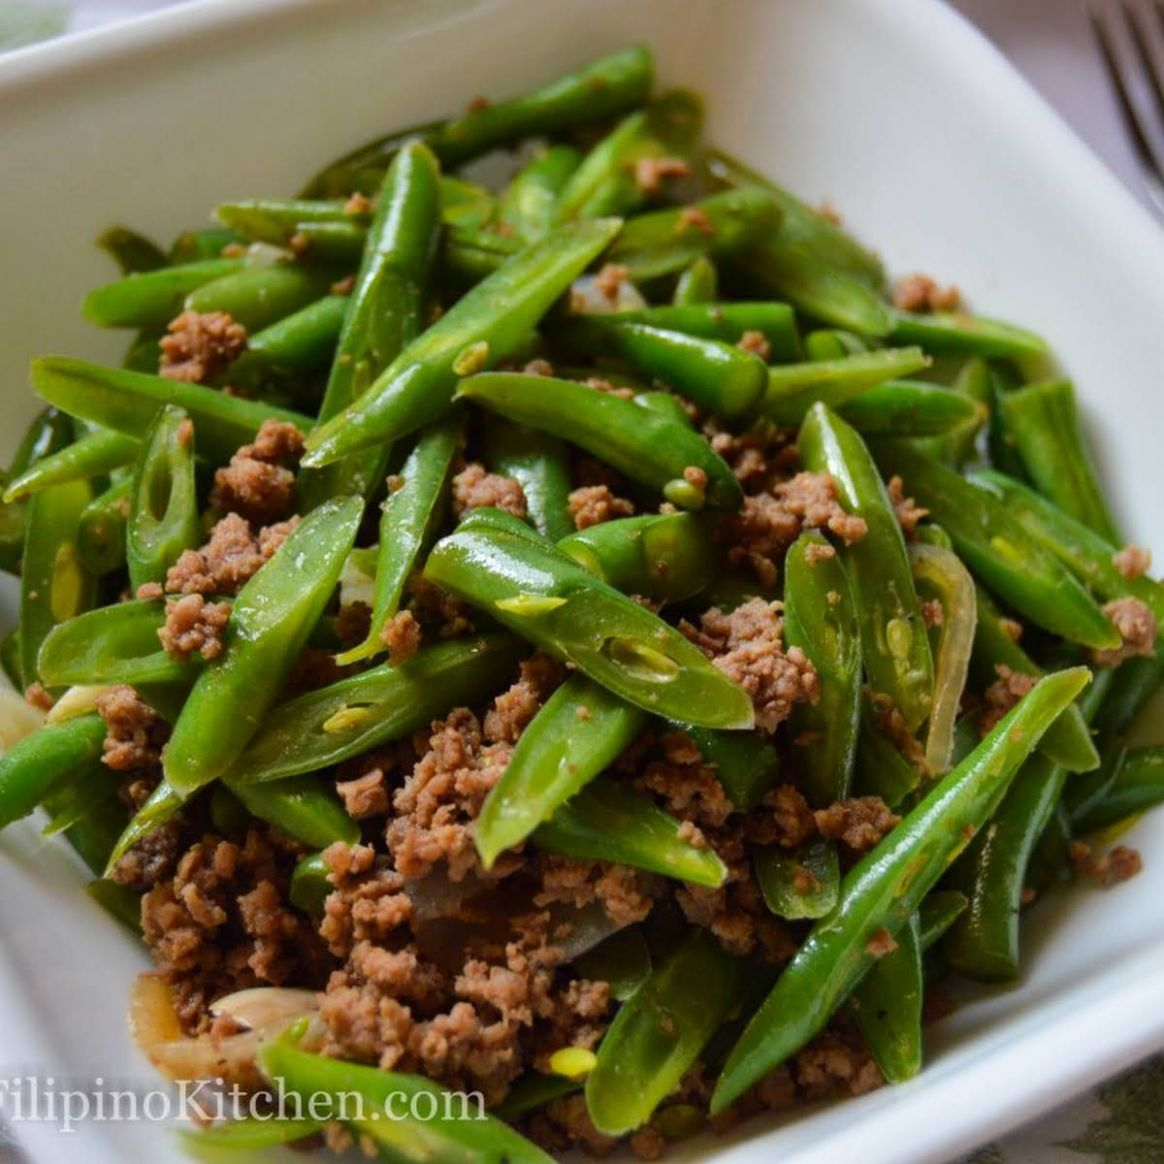 Sautéed Green Beans With Ground Beef (Filipino-style Ginisang Baguio Beans) - Vegetable Recipes Filipino